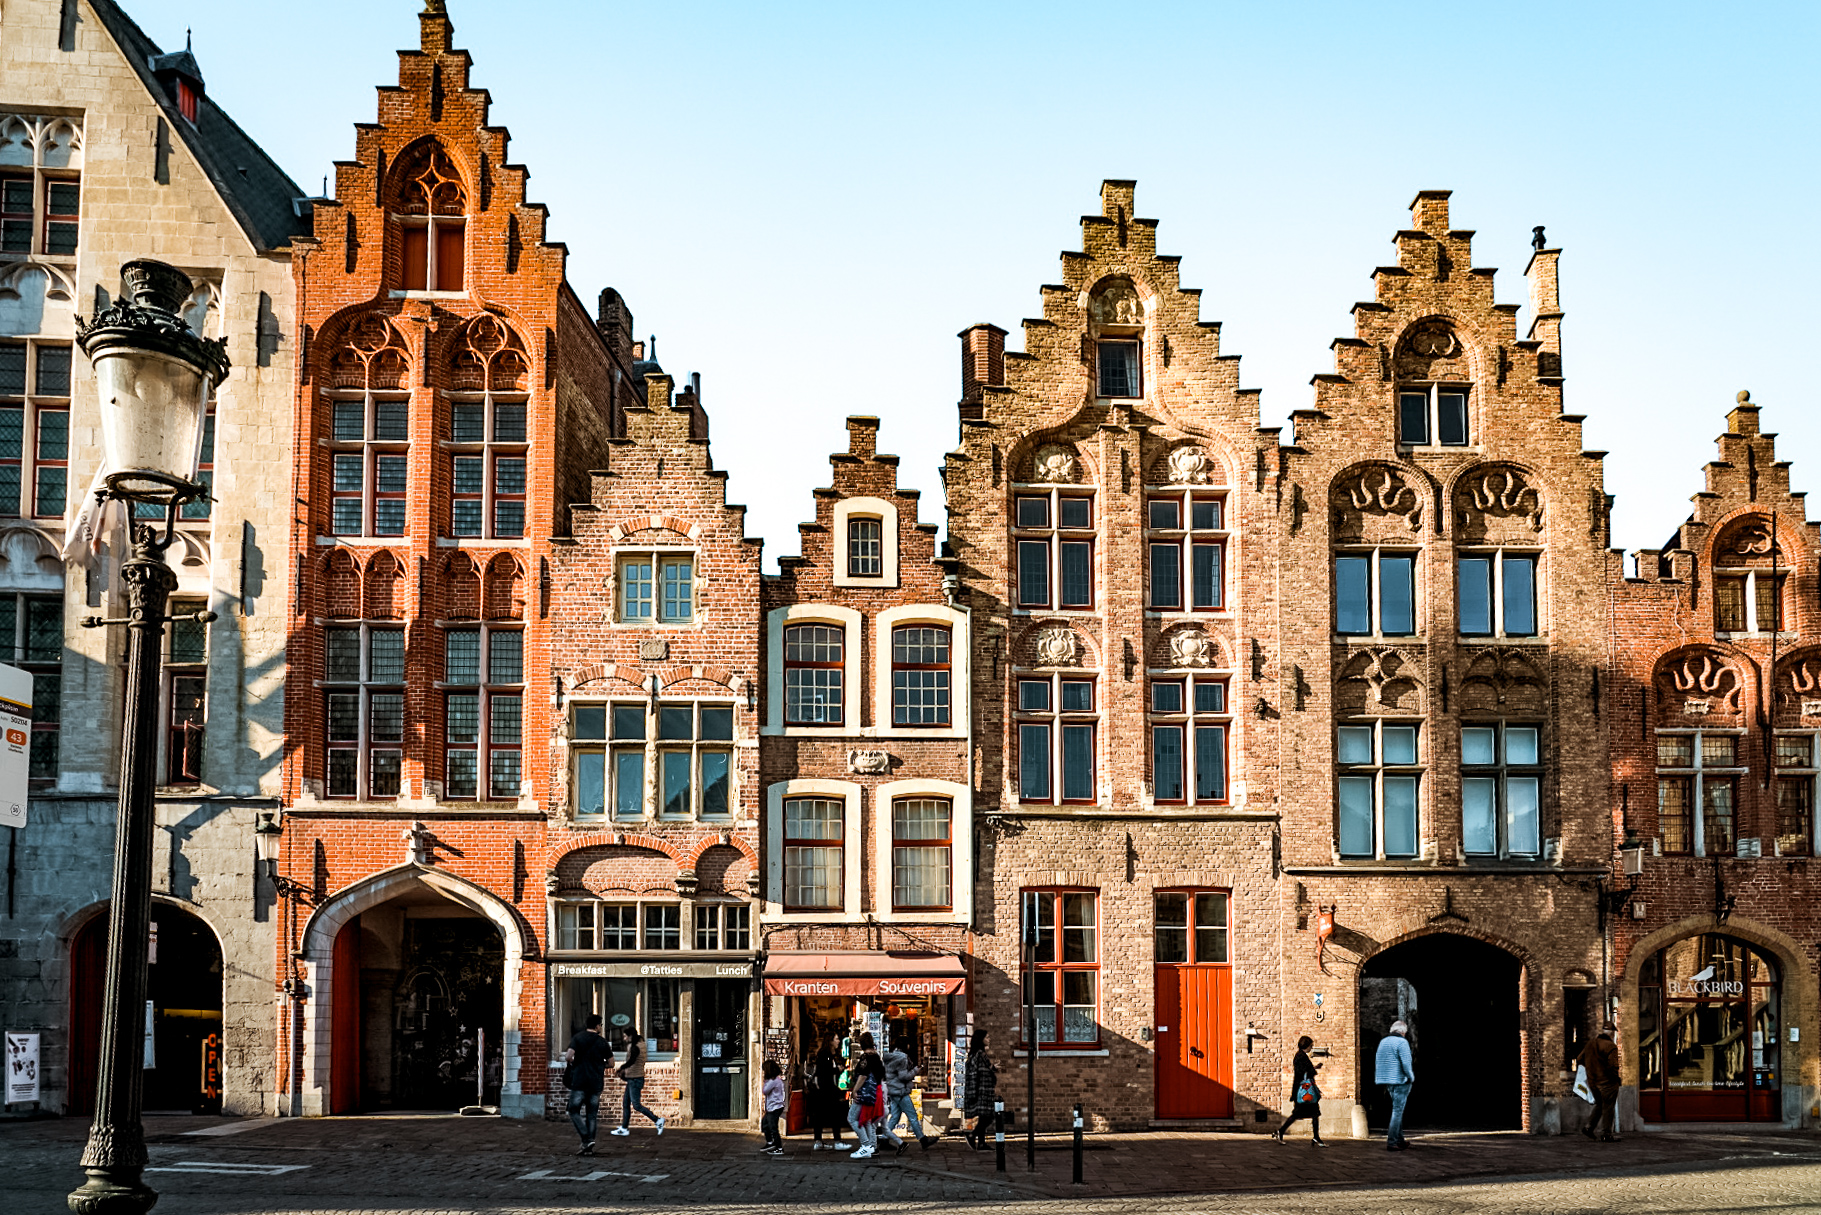 The Most Picturesque Locations in Bruges | Genthof